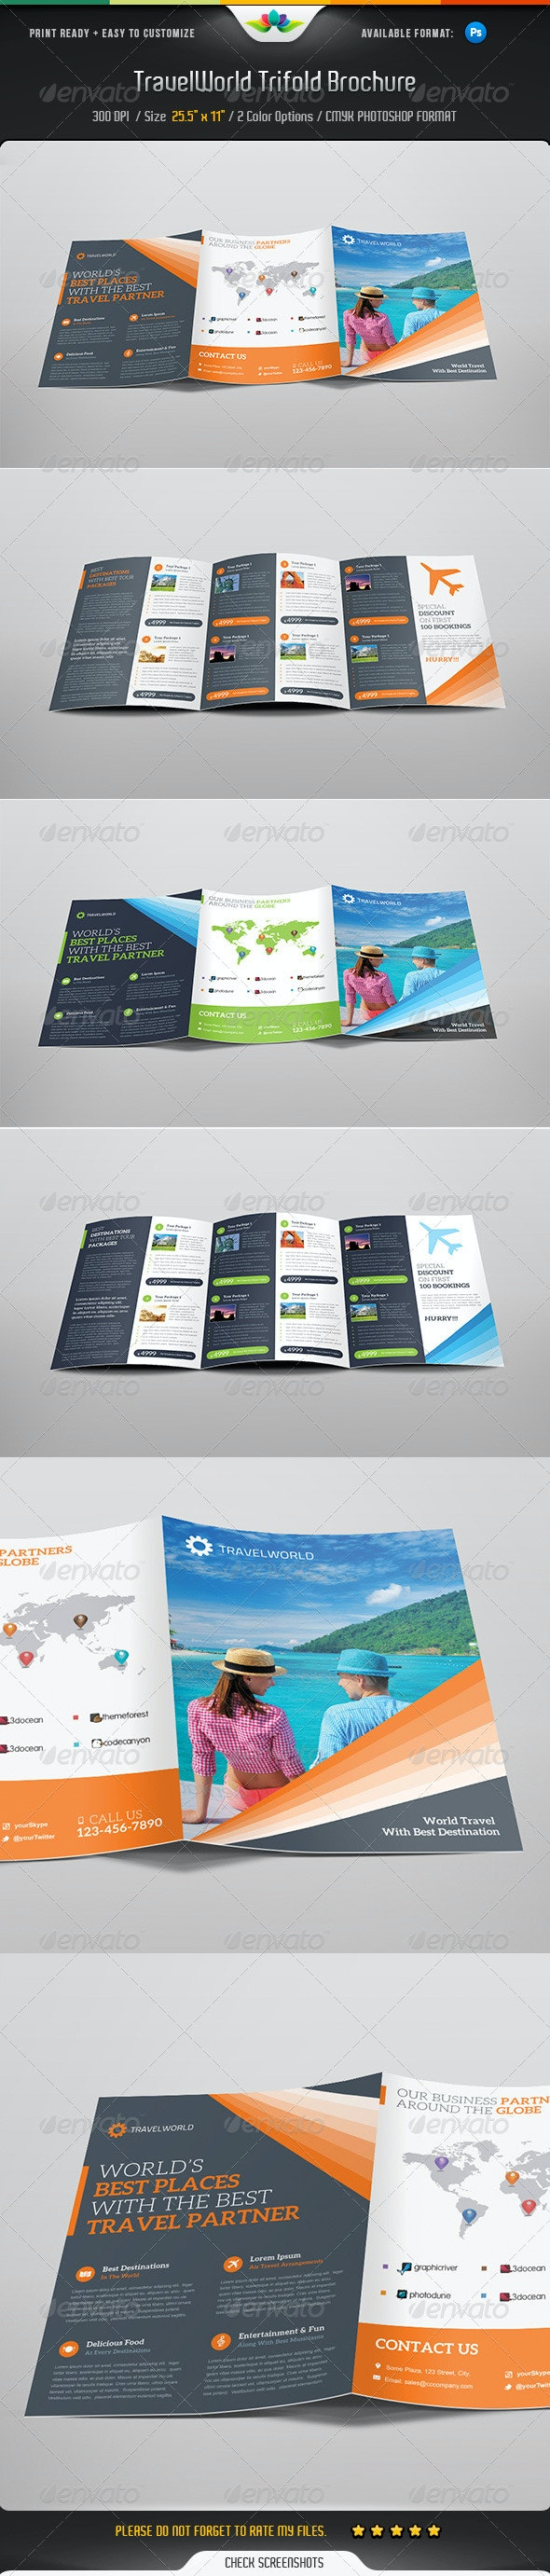 Travelworld Trifold Brochure  - Corporate Brochures